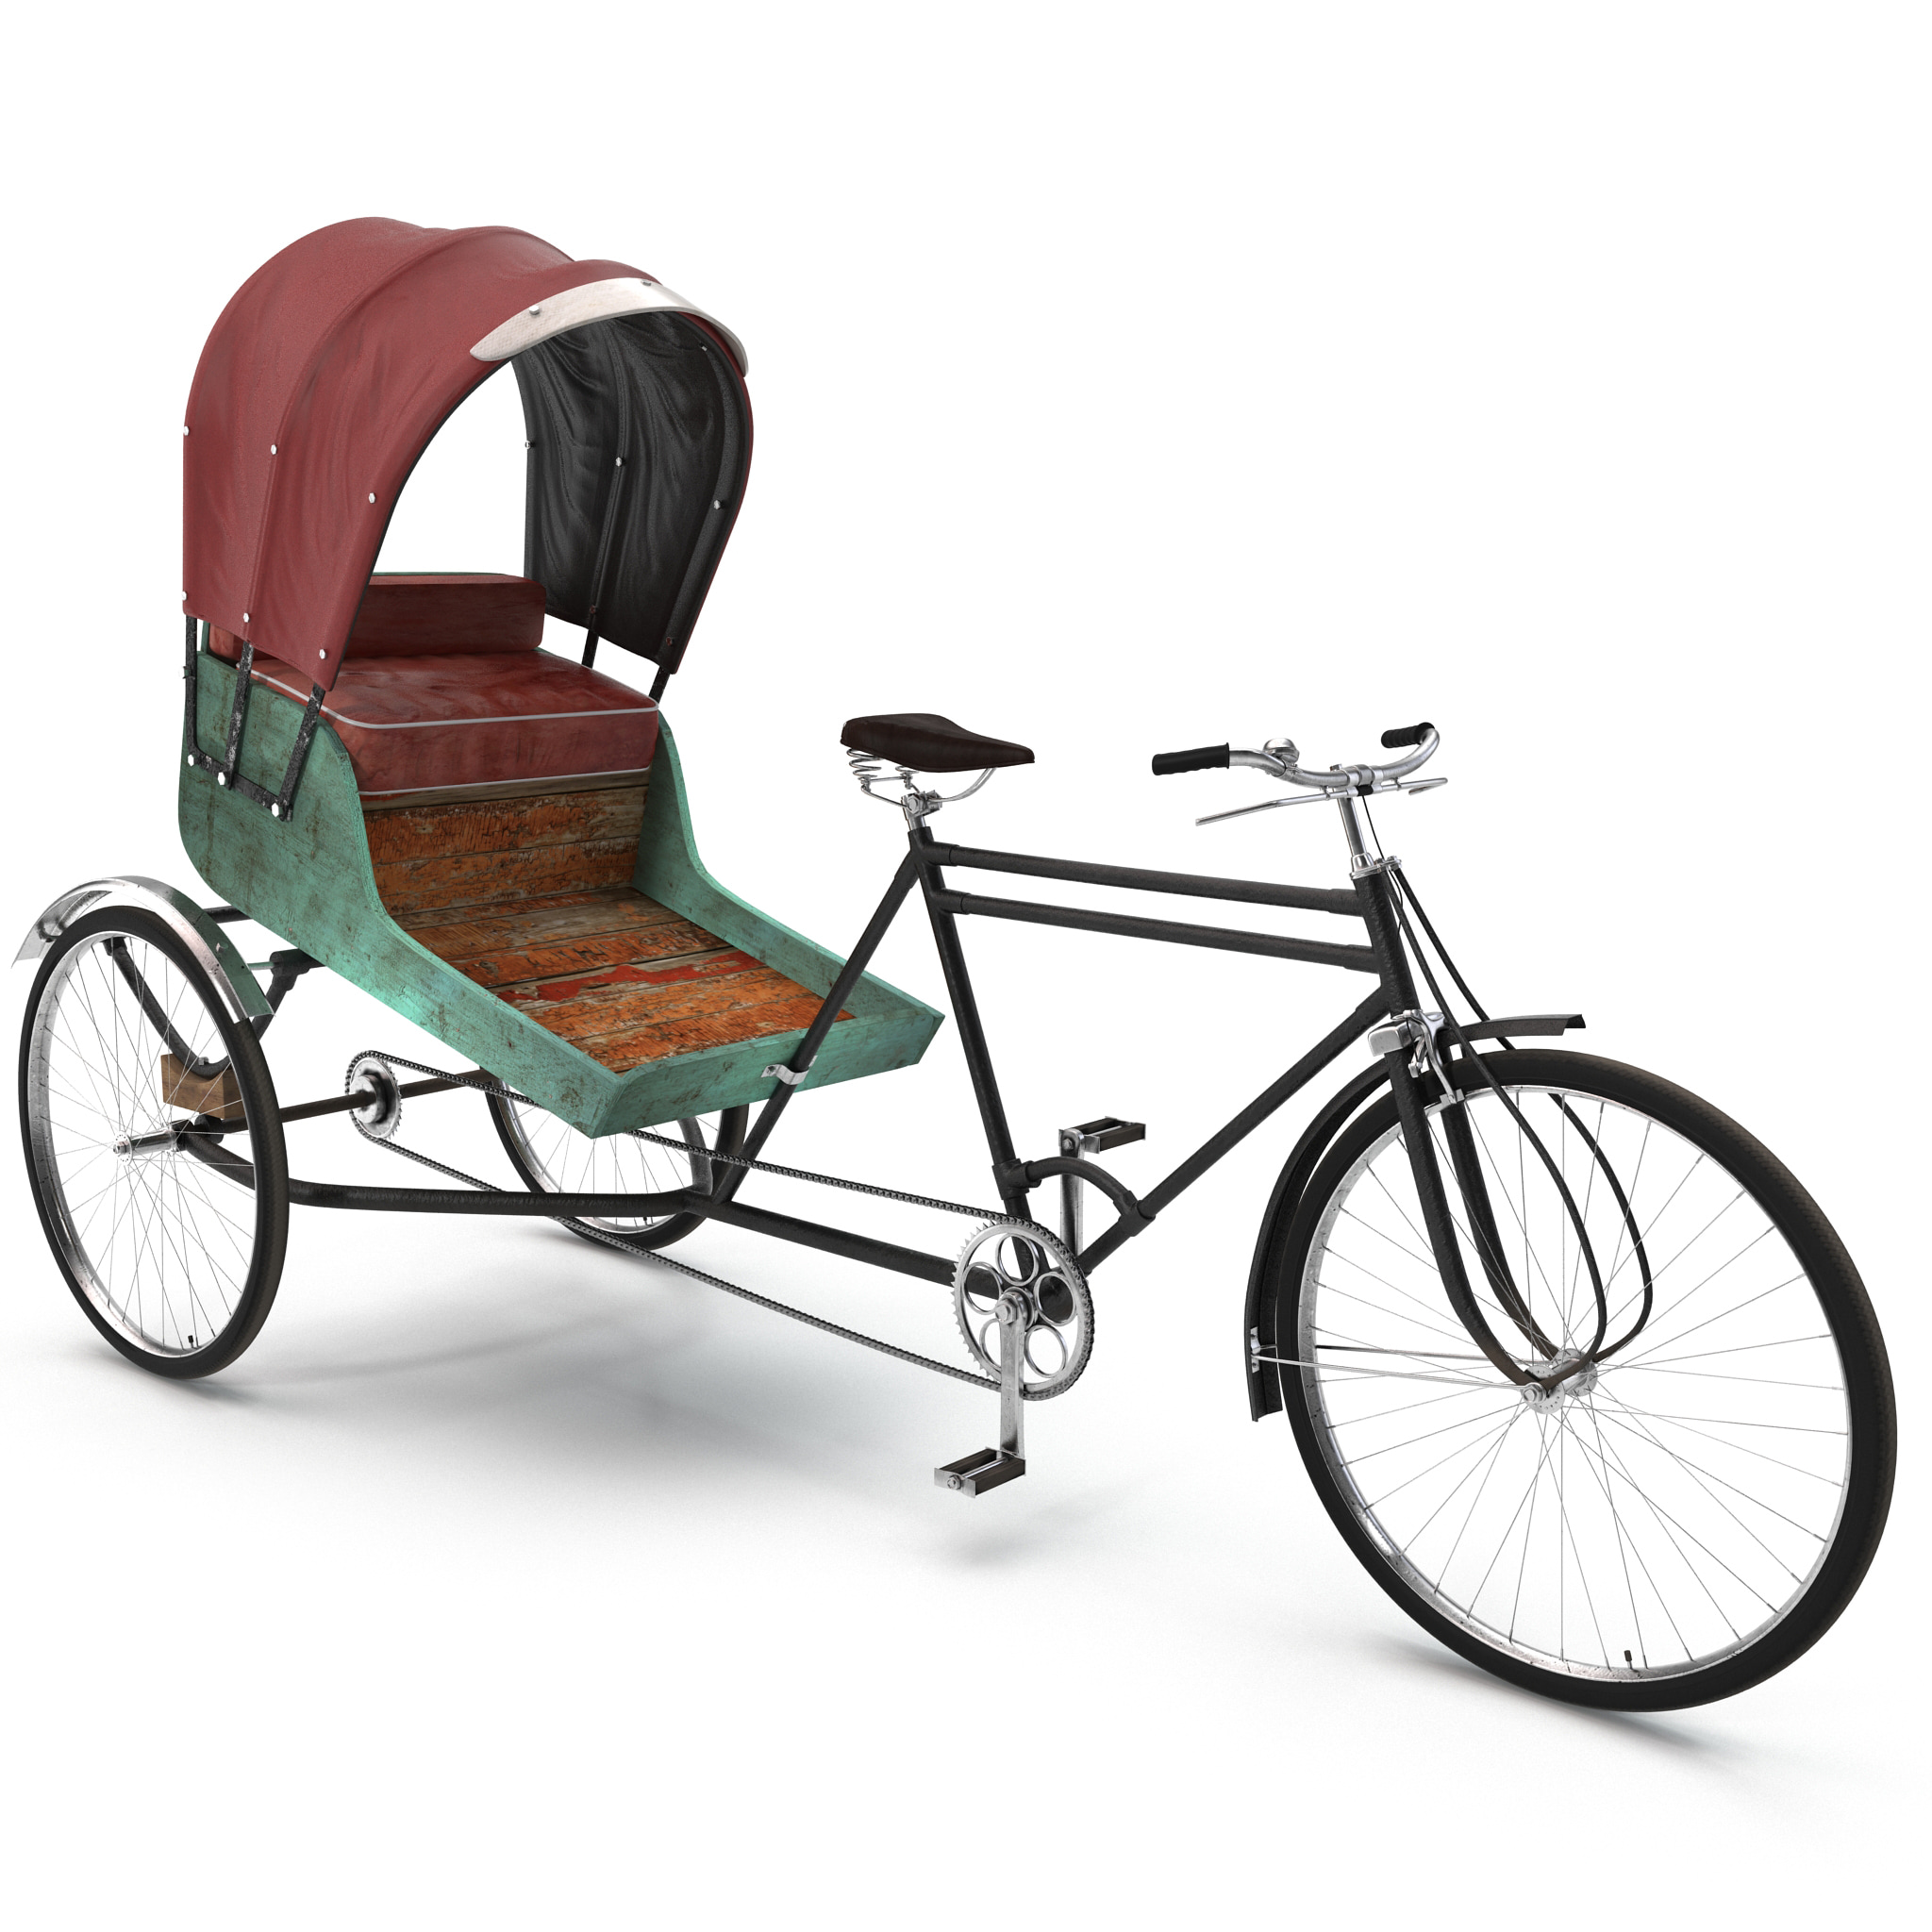 3ds bike rickshaw 2